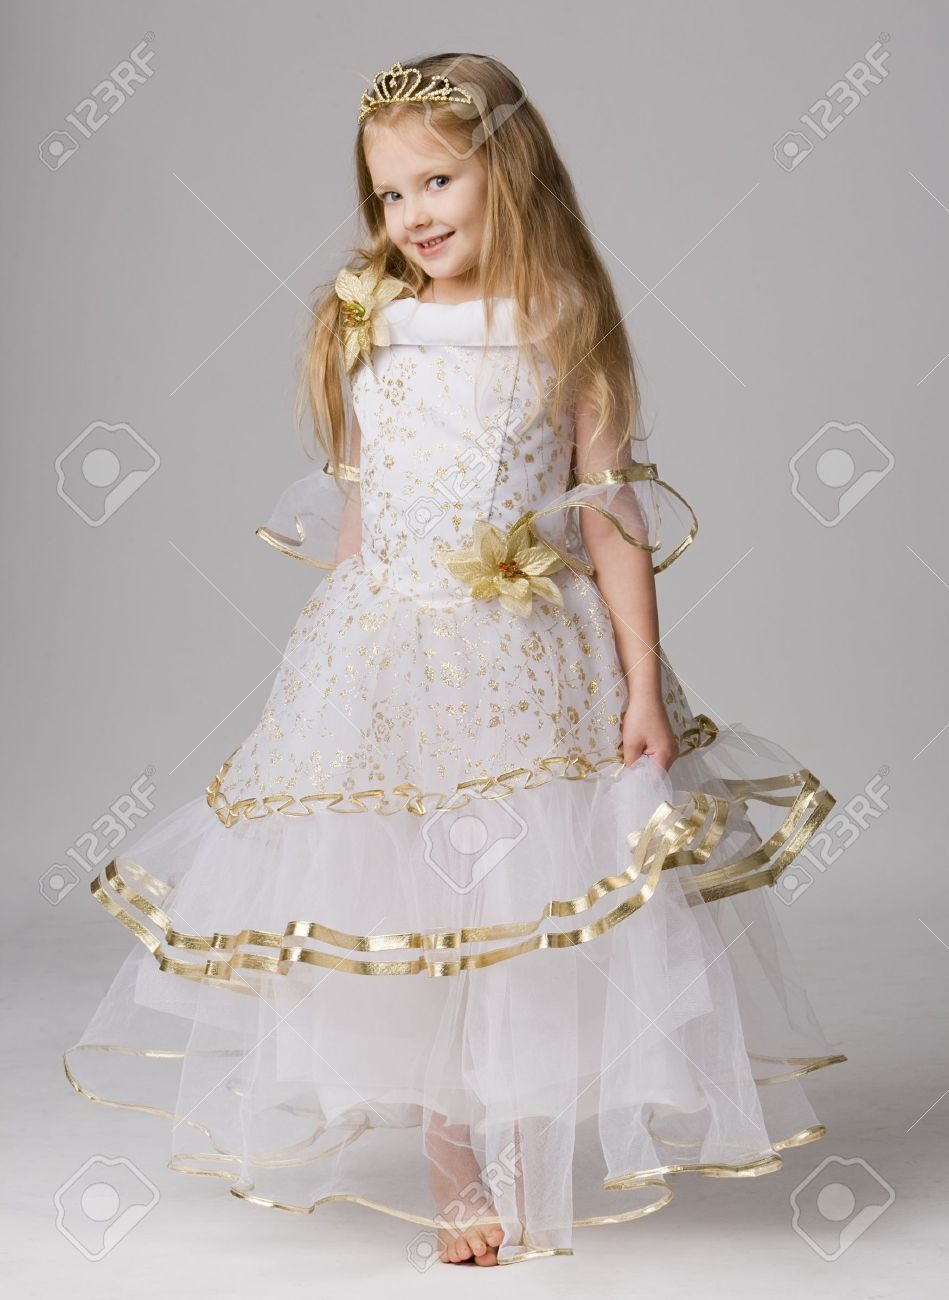 Beautiful Little Girl In Princess Dress With Long Hair Barefoot